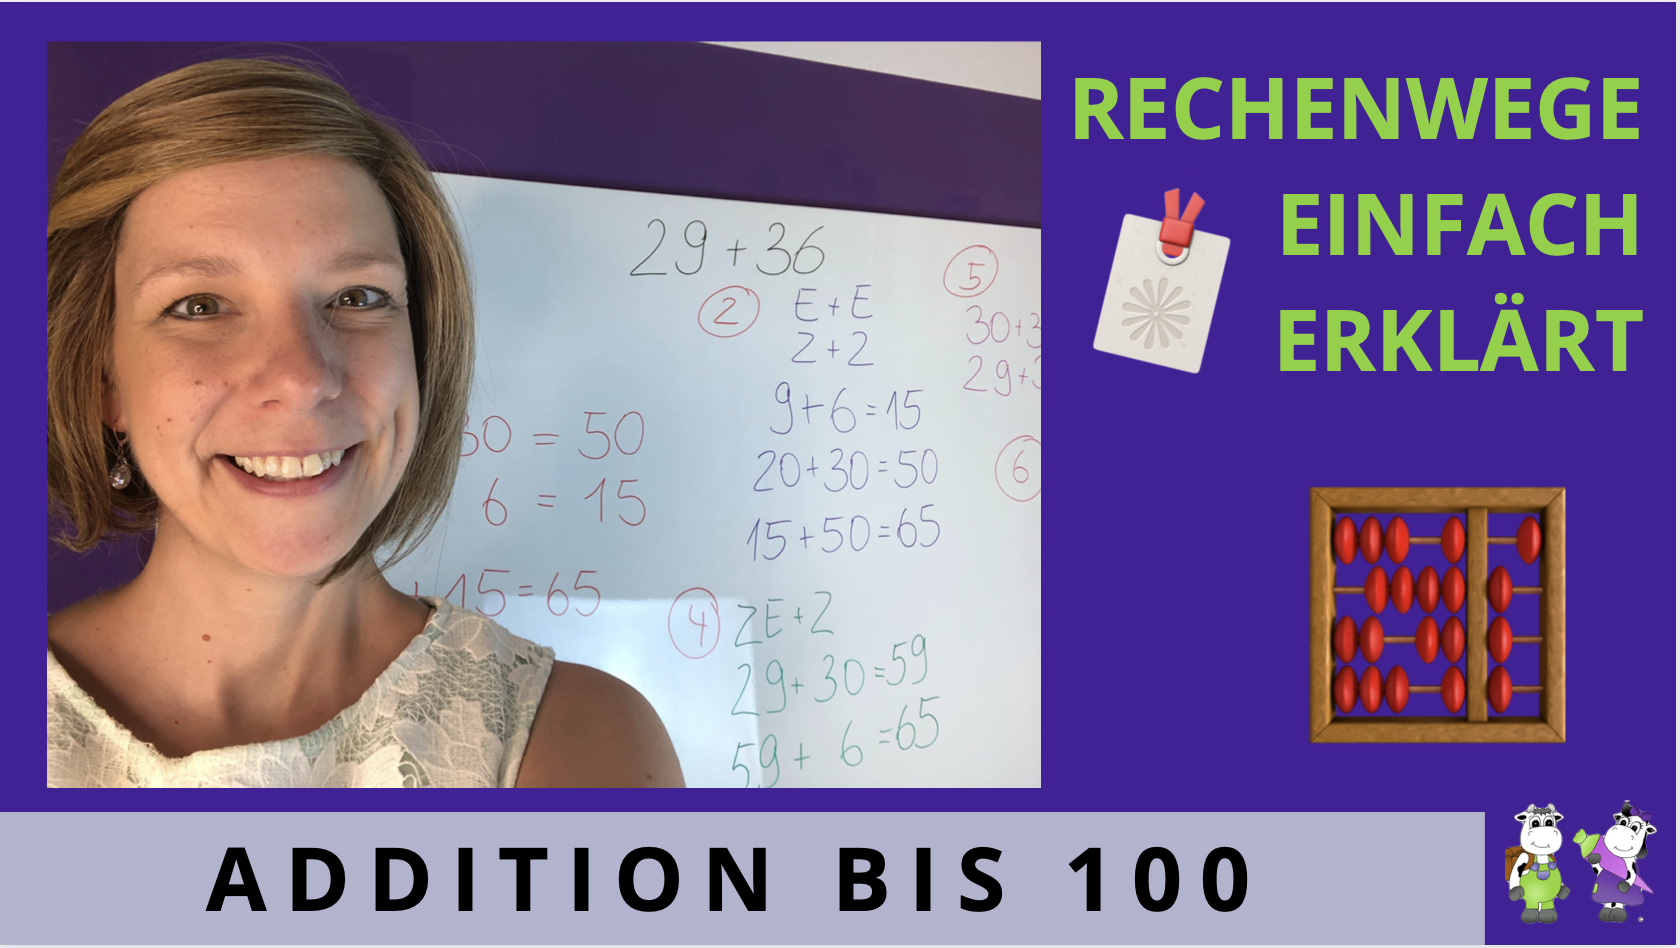 Addition bis 100